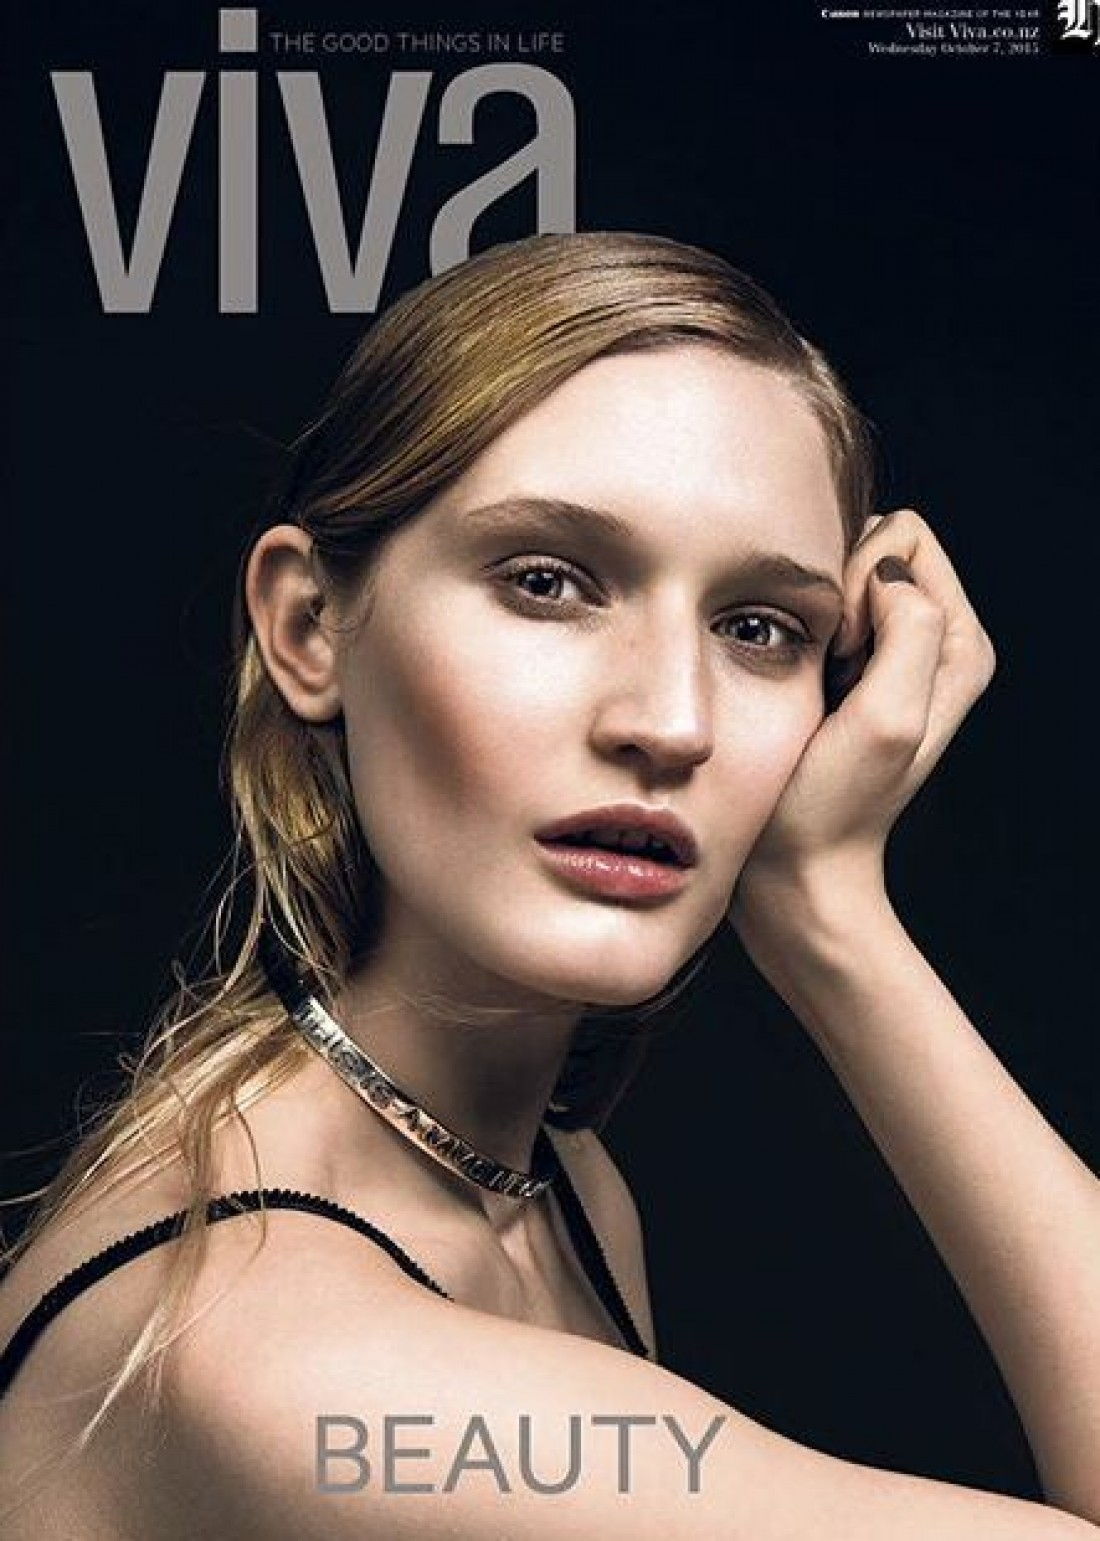 Jade shot by Guy Coombes for Viva magazine , styling by Dan Ahwa